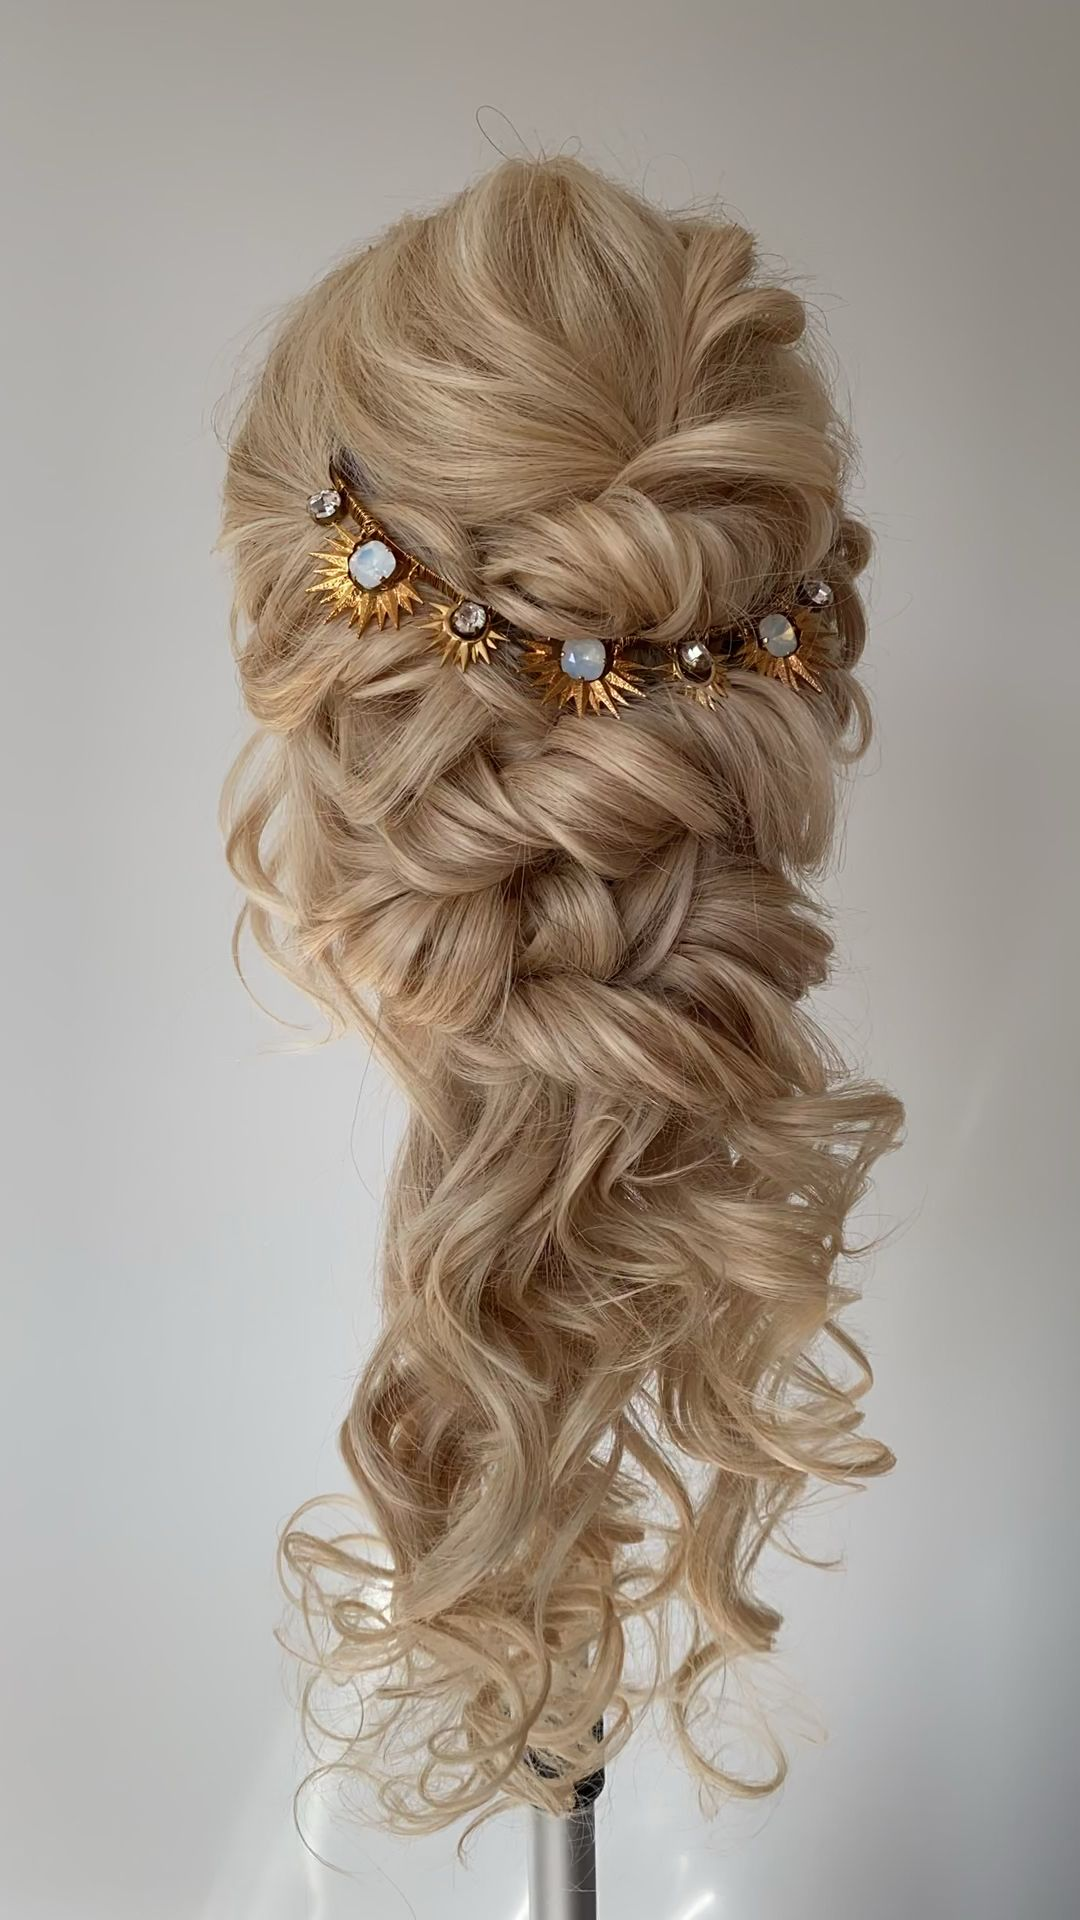 Romantic bridal hair - loose down style